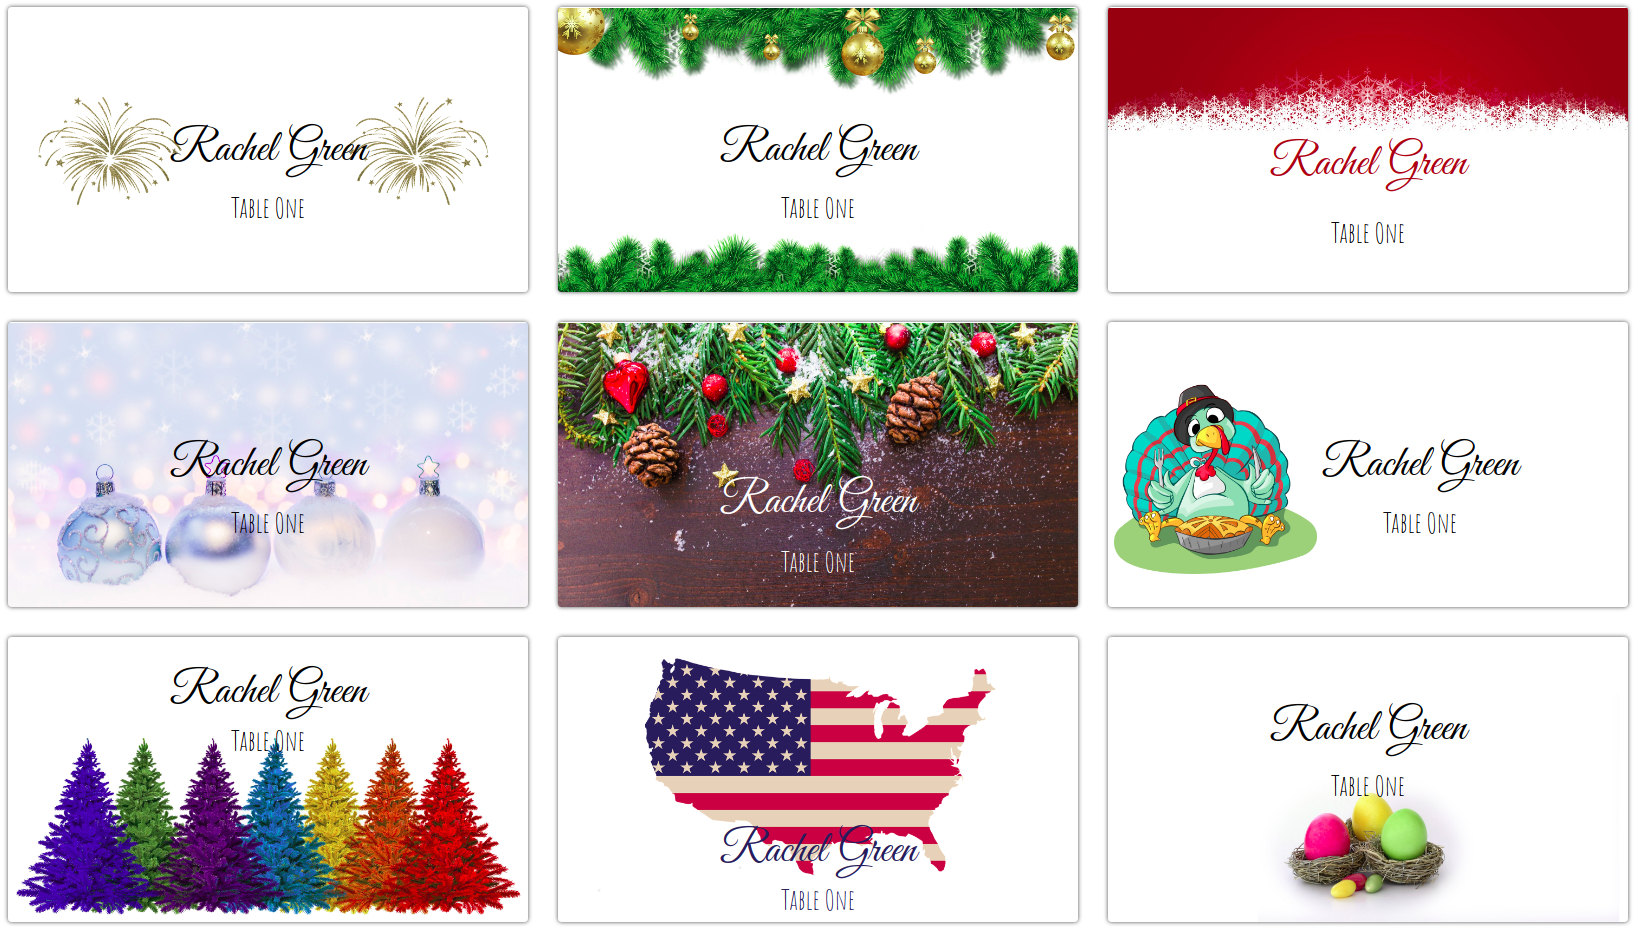 001 Christmas Table Name Place Cards Template Ideas Within Christmas Table Place Cards Template